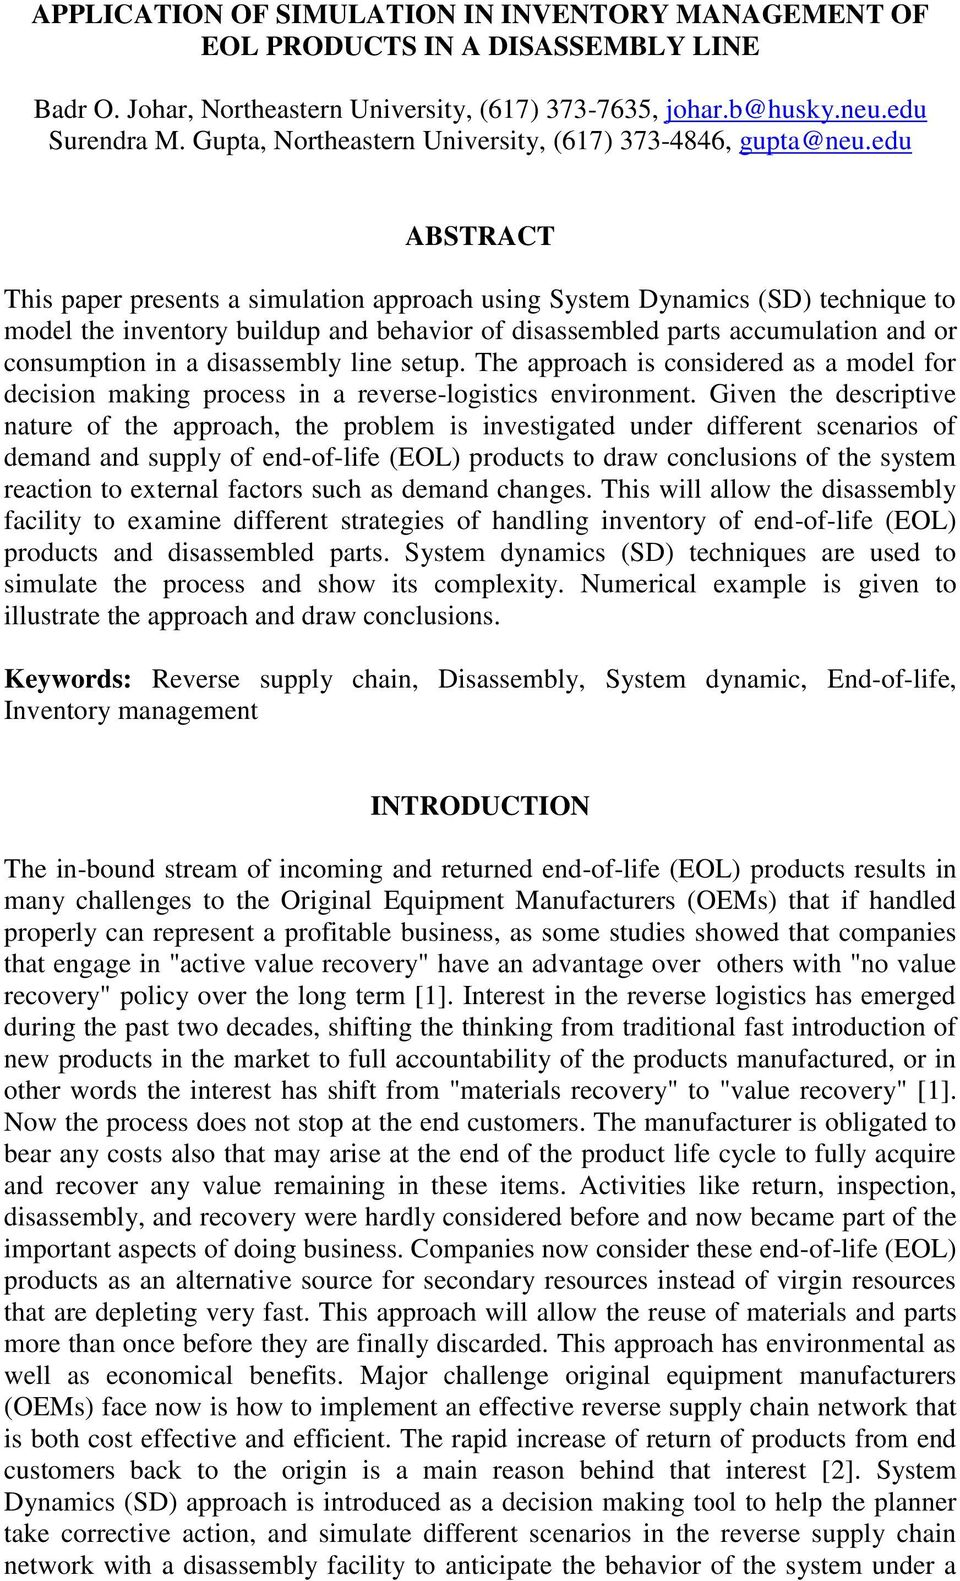 edu ABSTRACT This paper presents a simulation approach using System Dynamics (SD) technique to model the inventory buildup and behavior of disassembled parts accumulation and or consumption in a